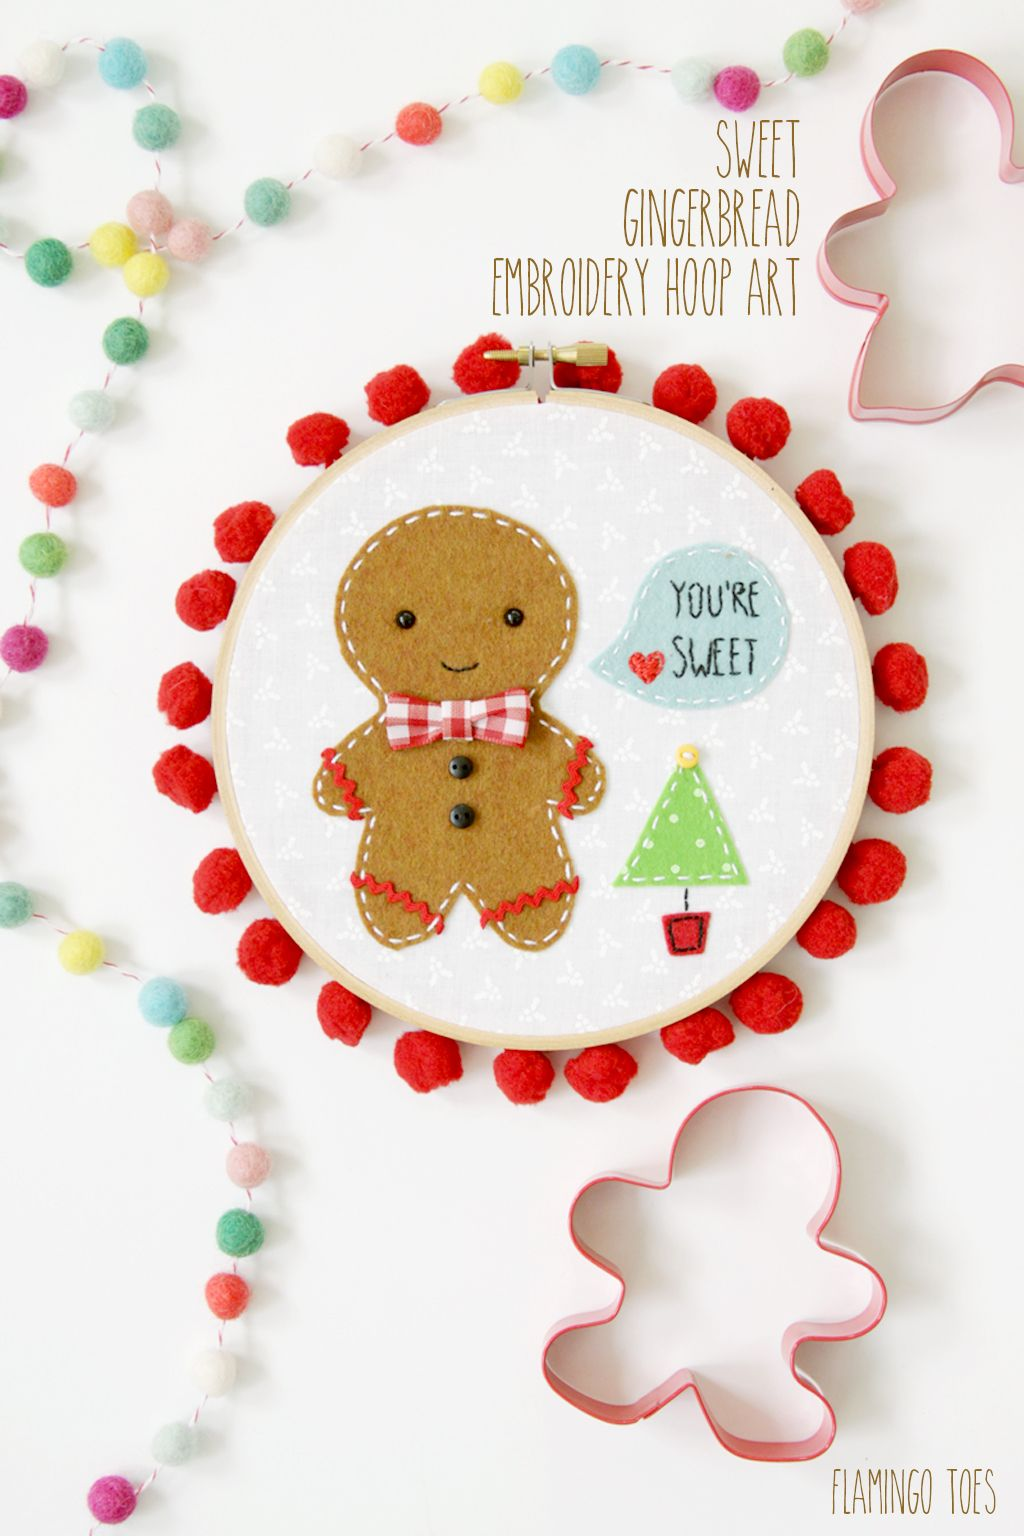 Sweet Gingerbread Embroidery Hoop Art | *Christmas* | Pinterest ...